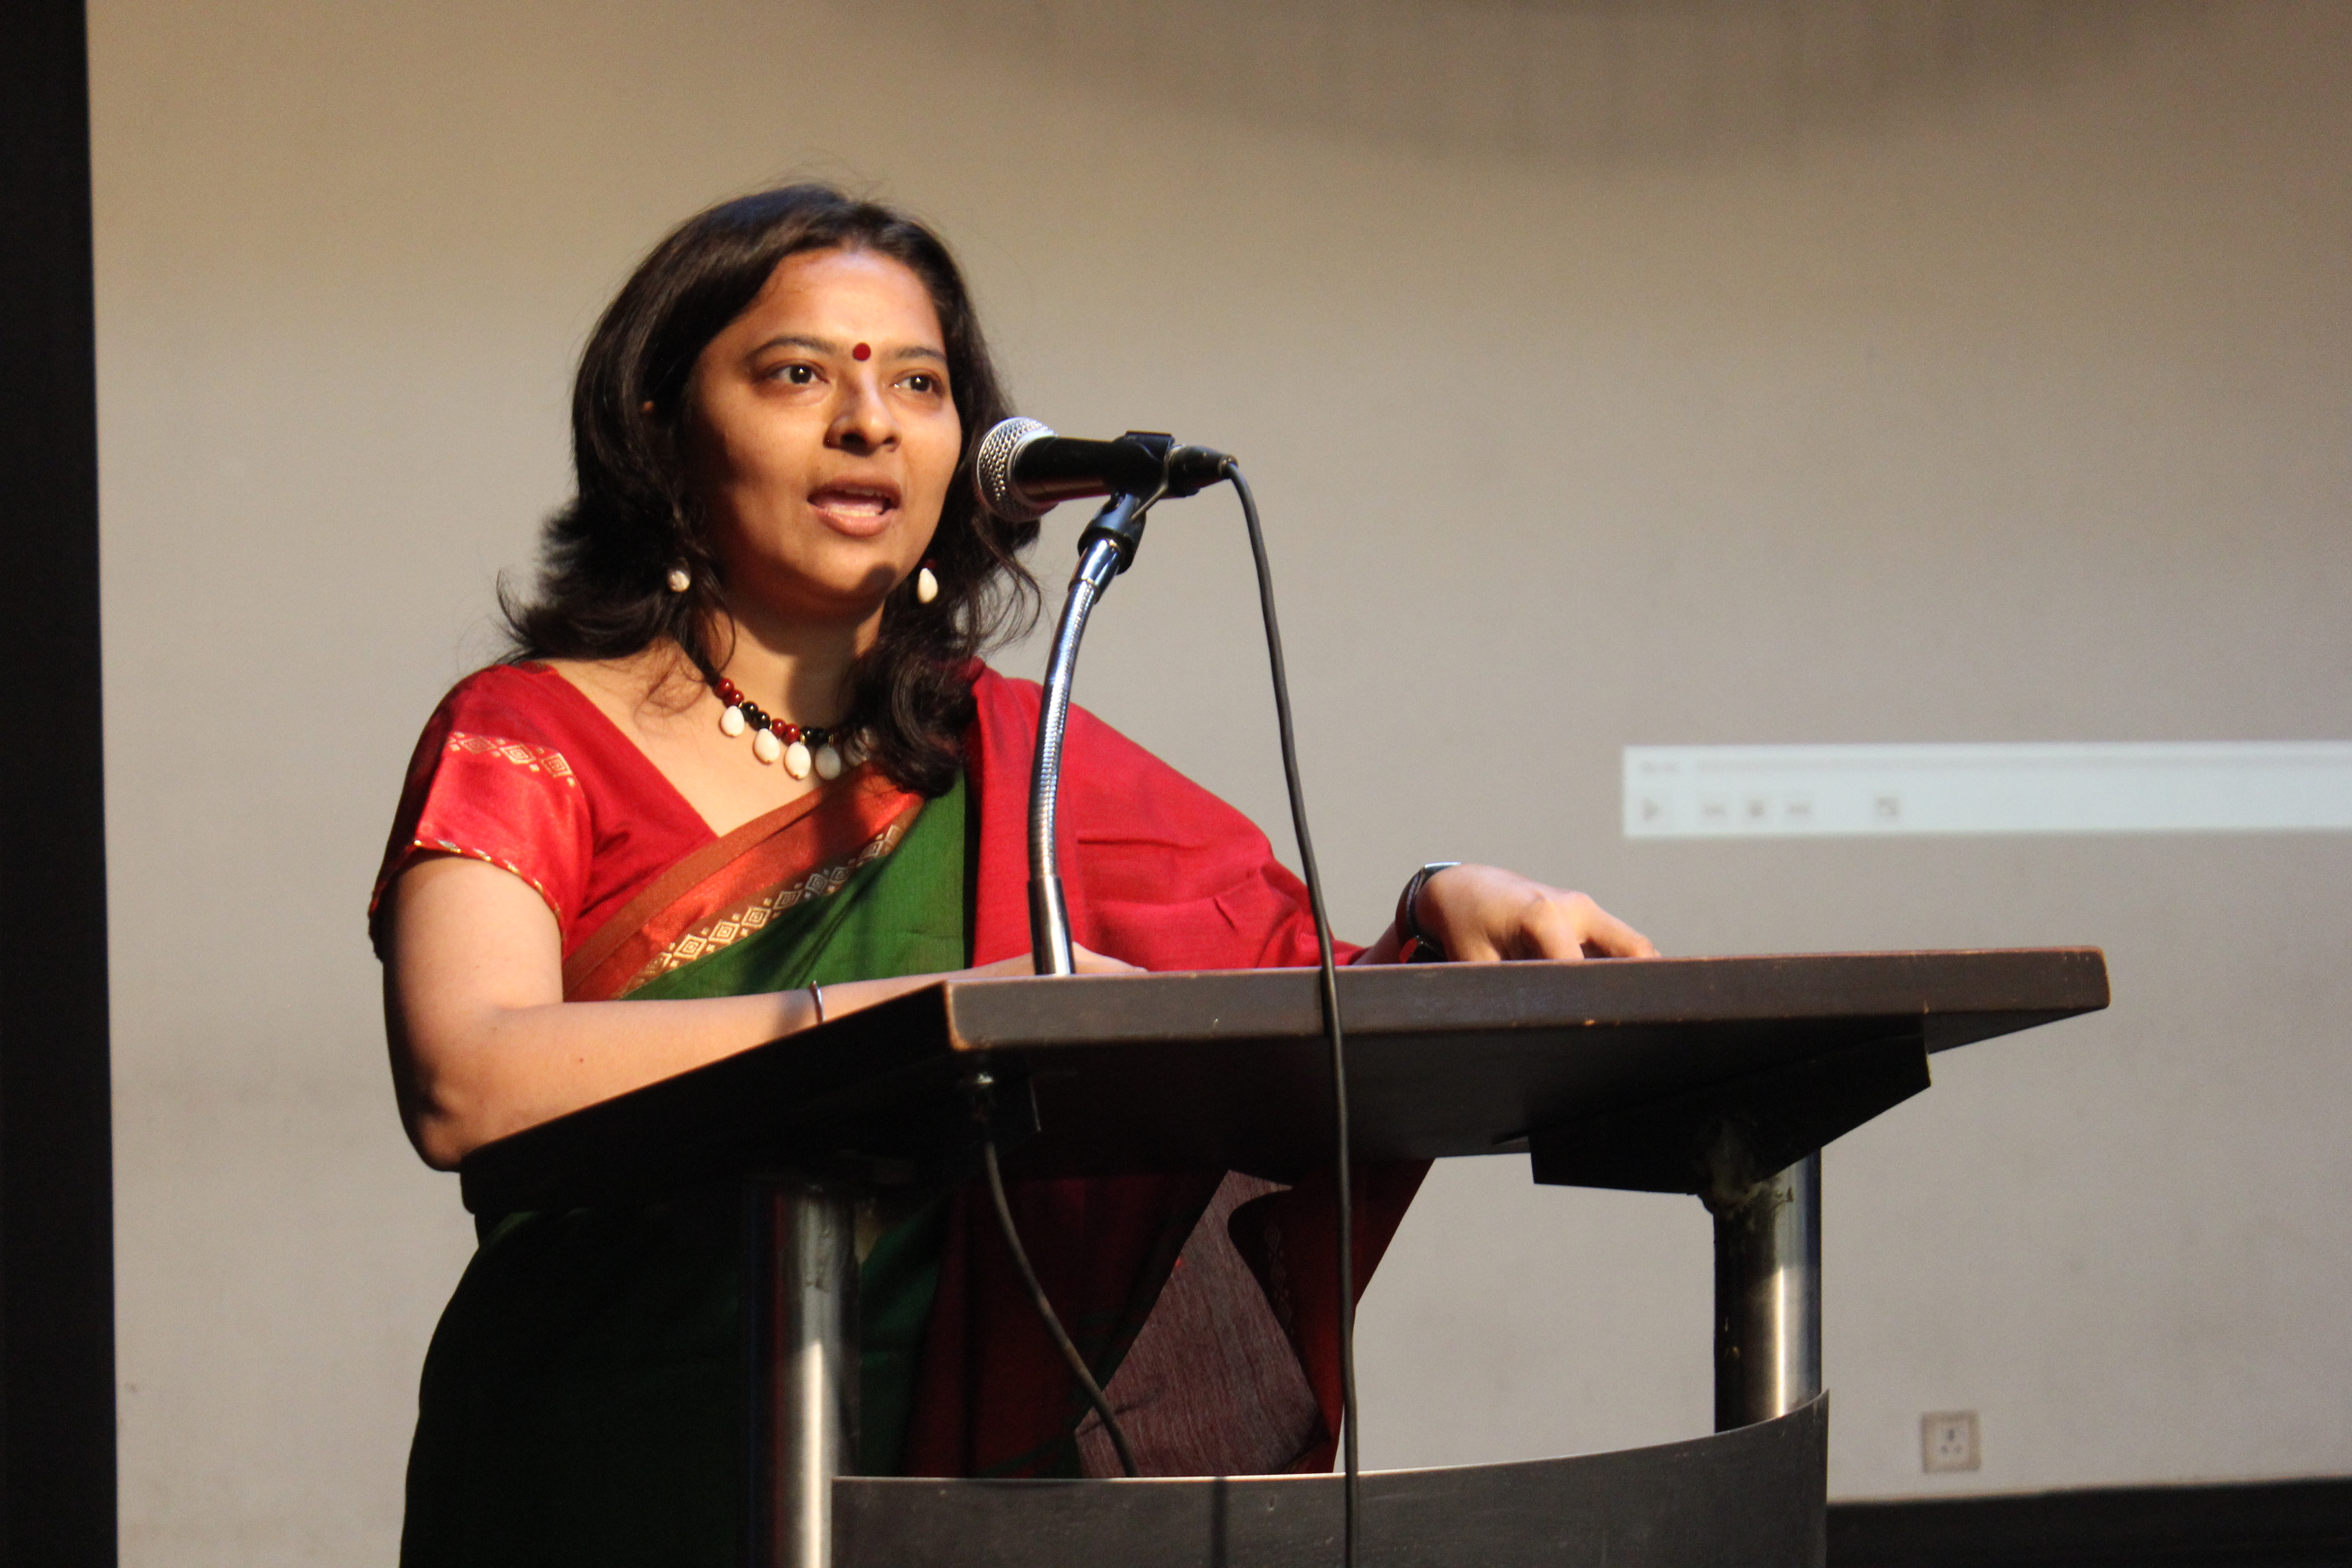 International Survivors of Suicide Loss Day 2017: Assistant Professor of Psychology in Mithibai College of Arts, Ms. Suchitra Chowdhary.